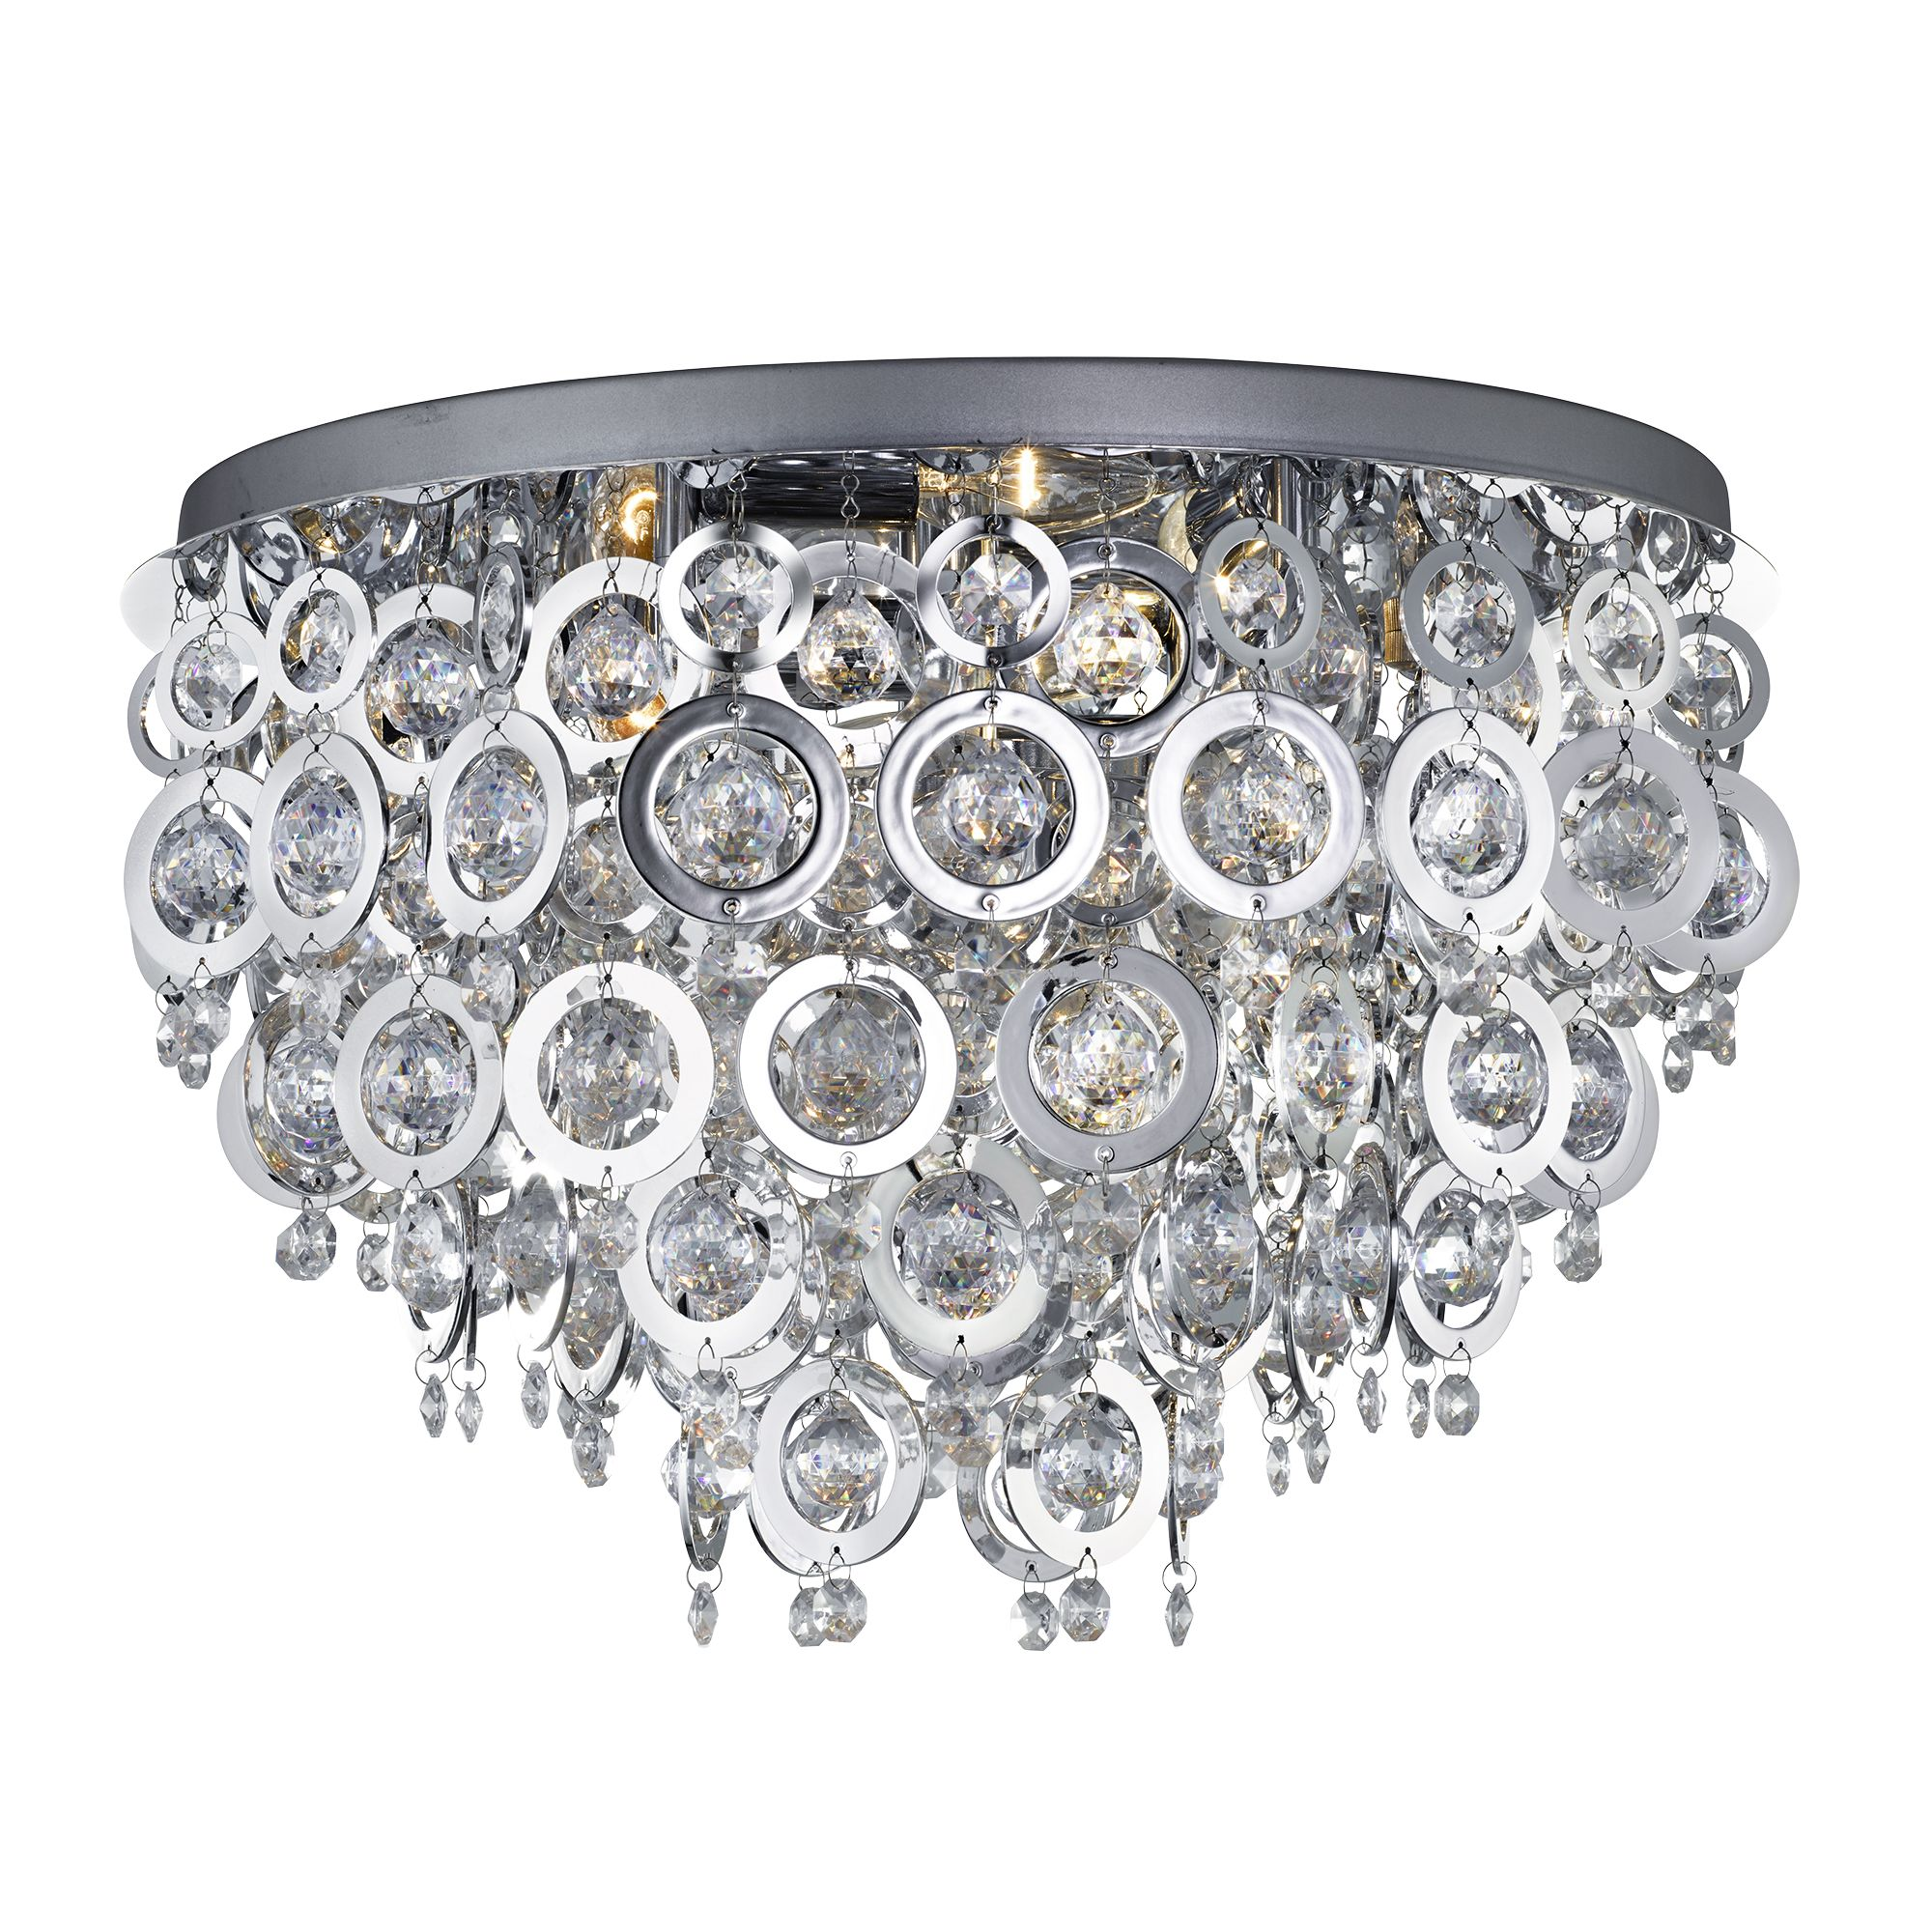 Nova Chrome 5 Light Fitting With Chrome Rings & Clear Acrylic Inserts